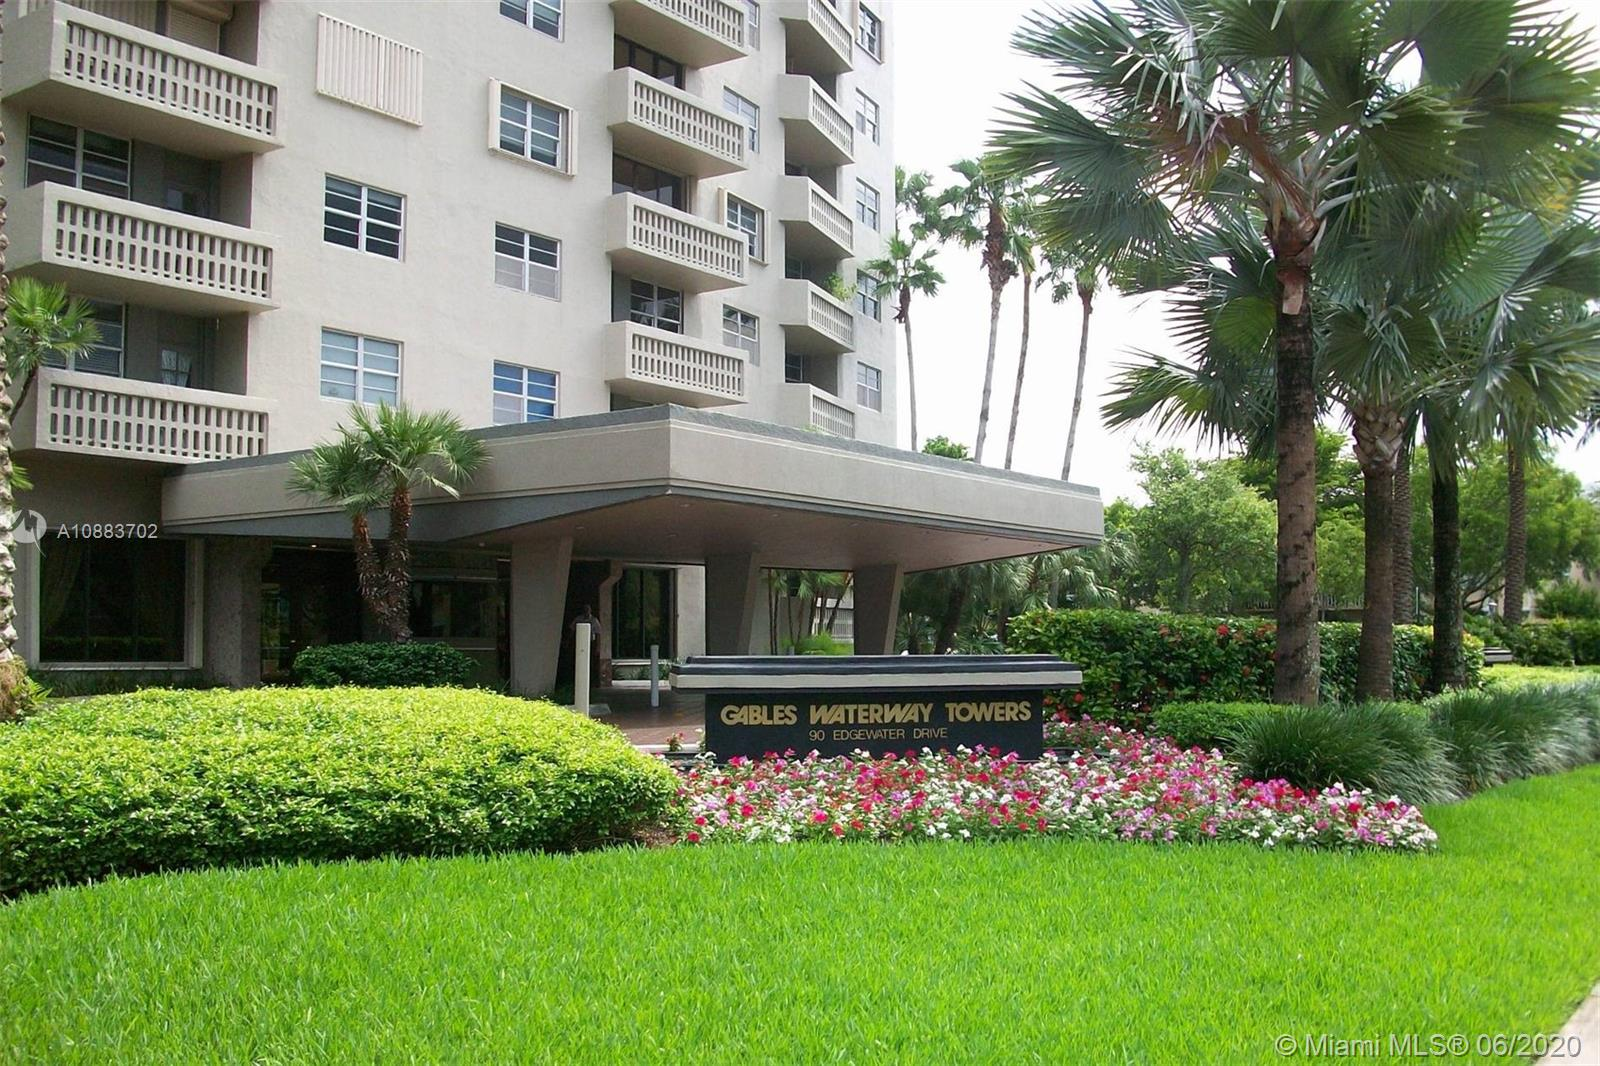 Gables Waterway #402 - 90 Edgewater Dr #402, Coral Gables, FL 33133